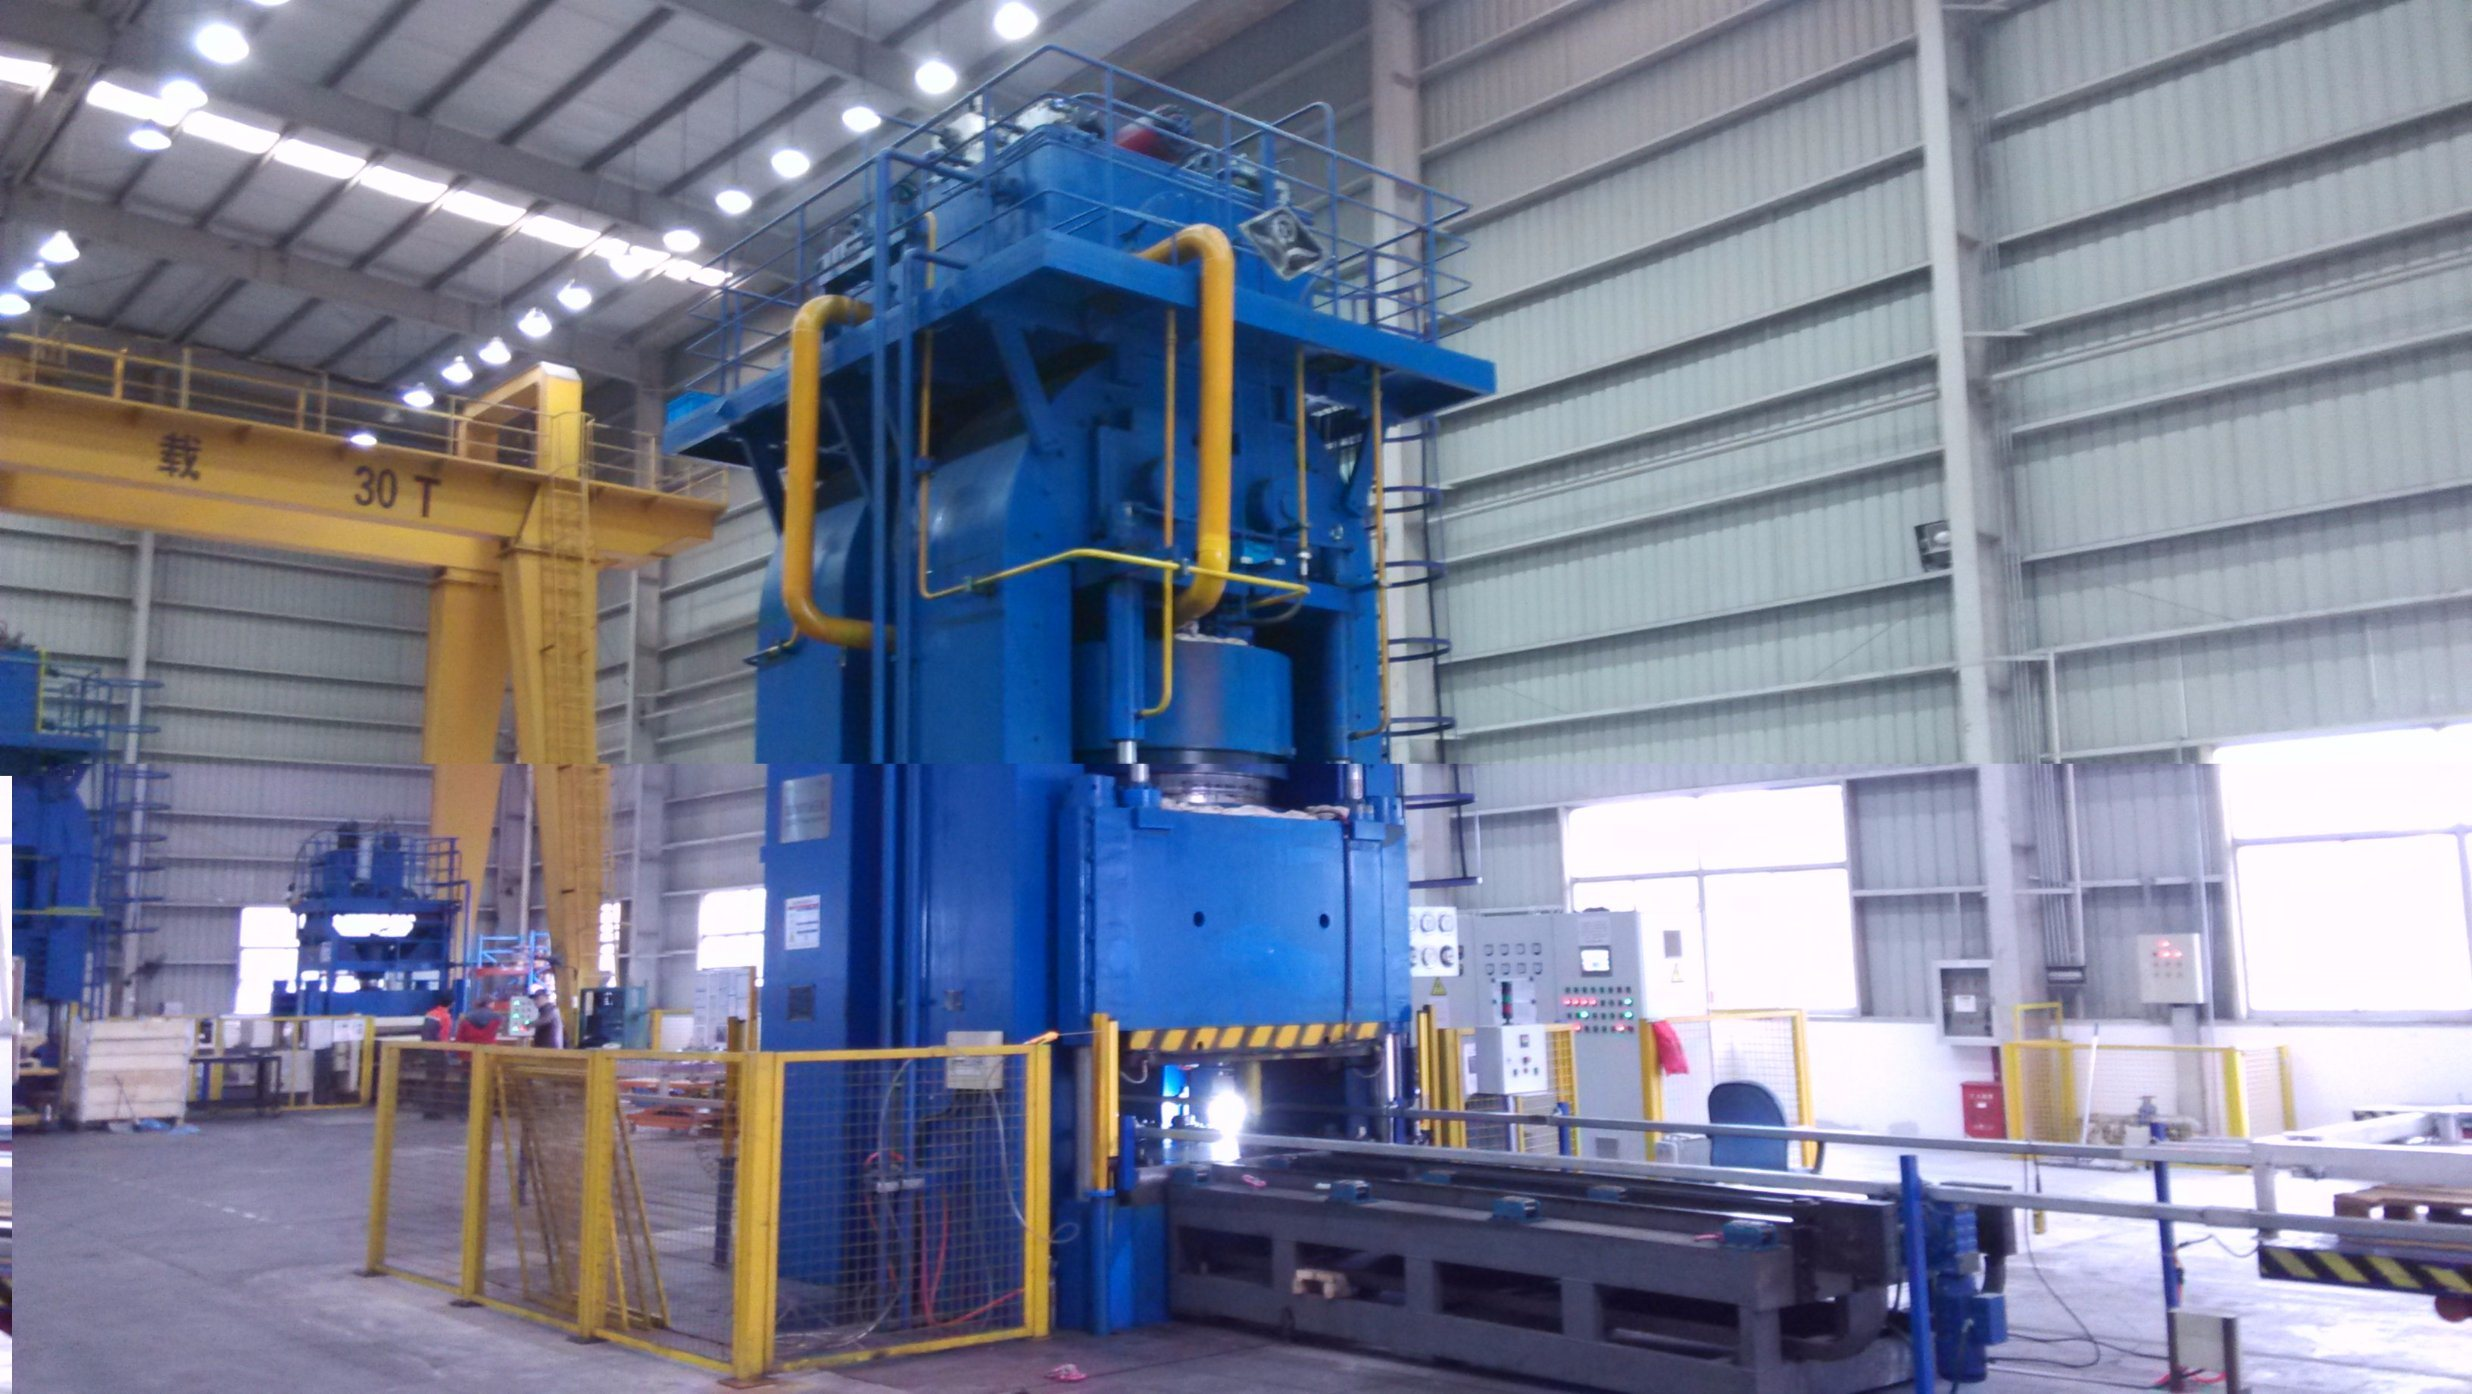 10000t Hydraulic Press for Metal Plates Stamping/Forming